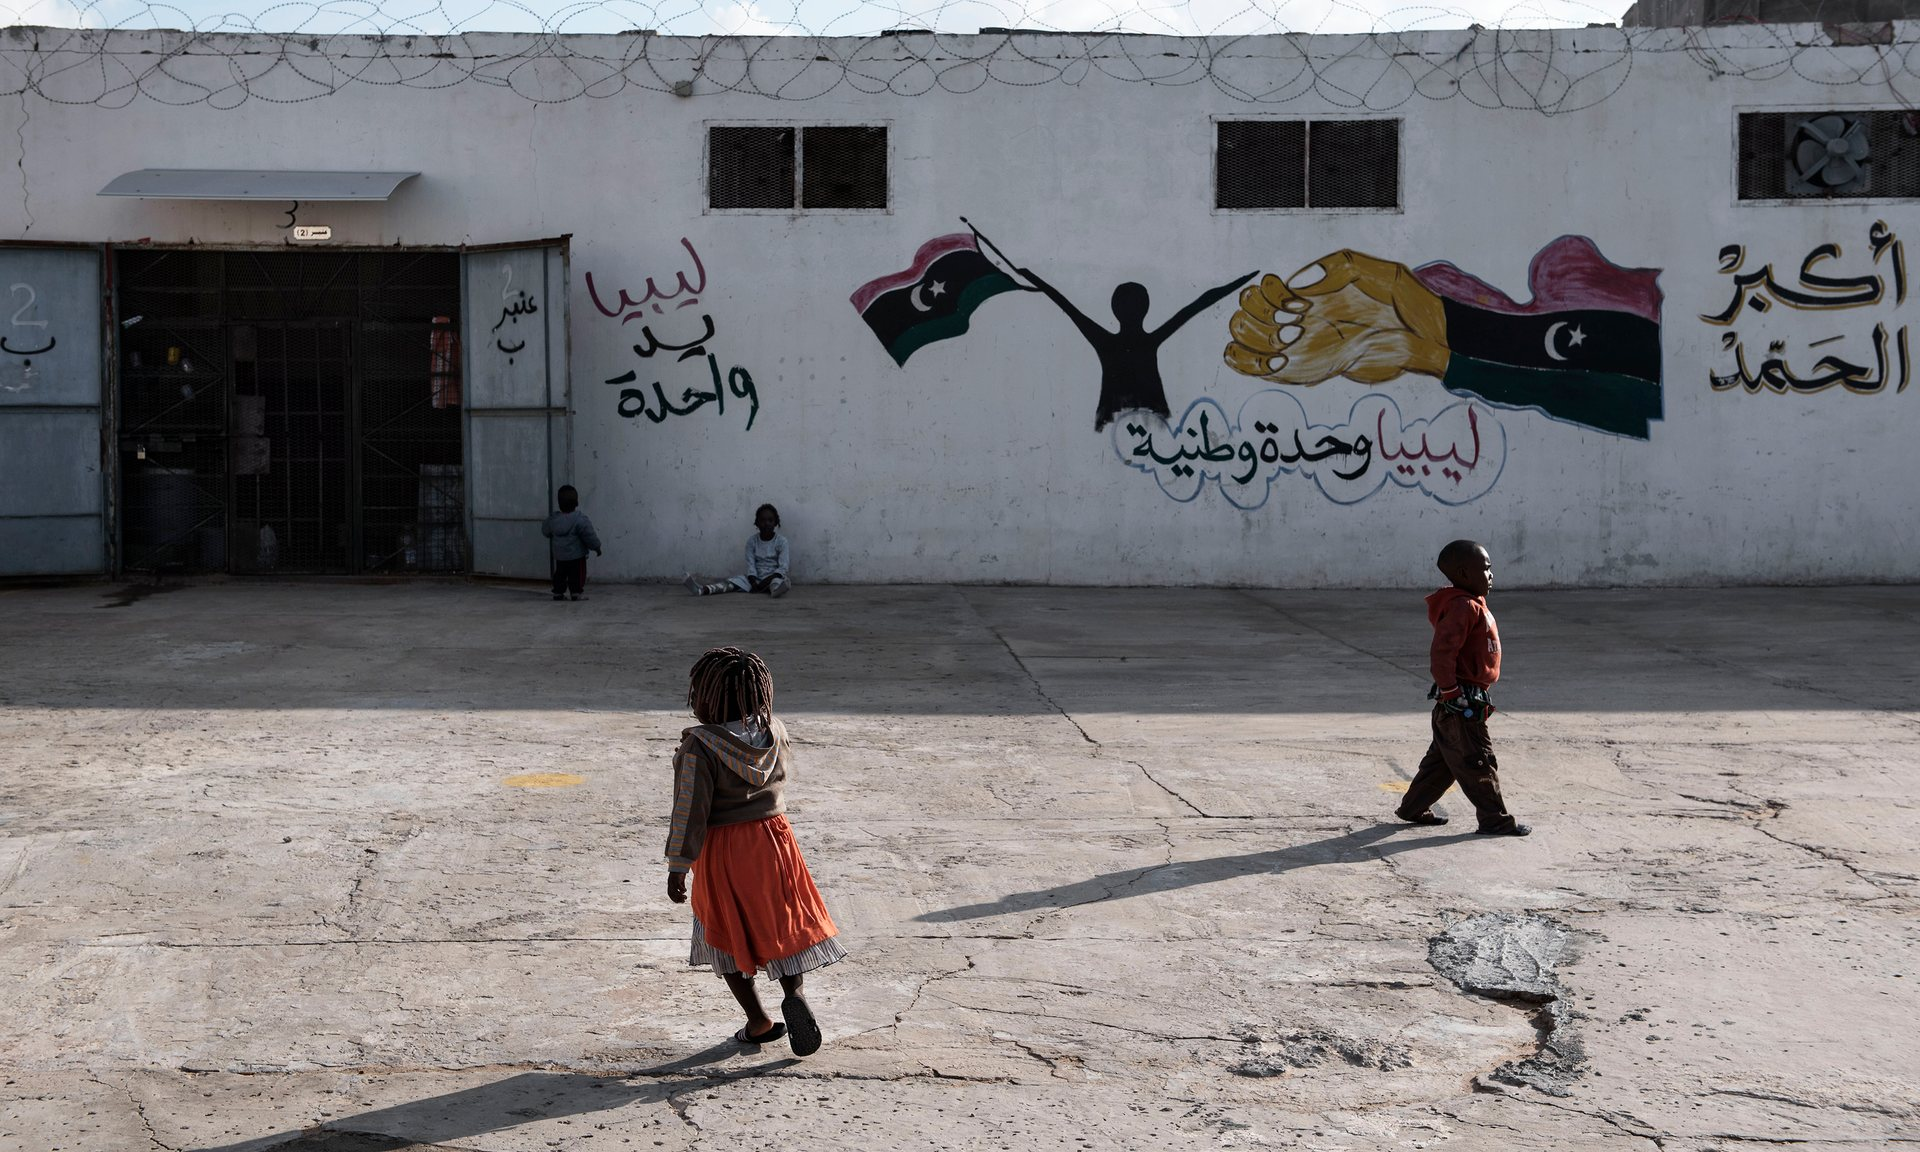 Children outside a government-run detention centre in Libya. Photograph: Romenzi/Unicef